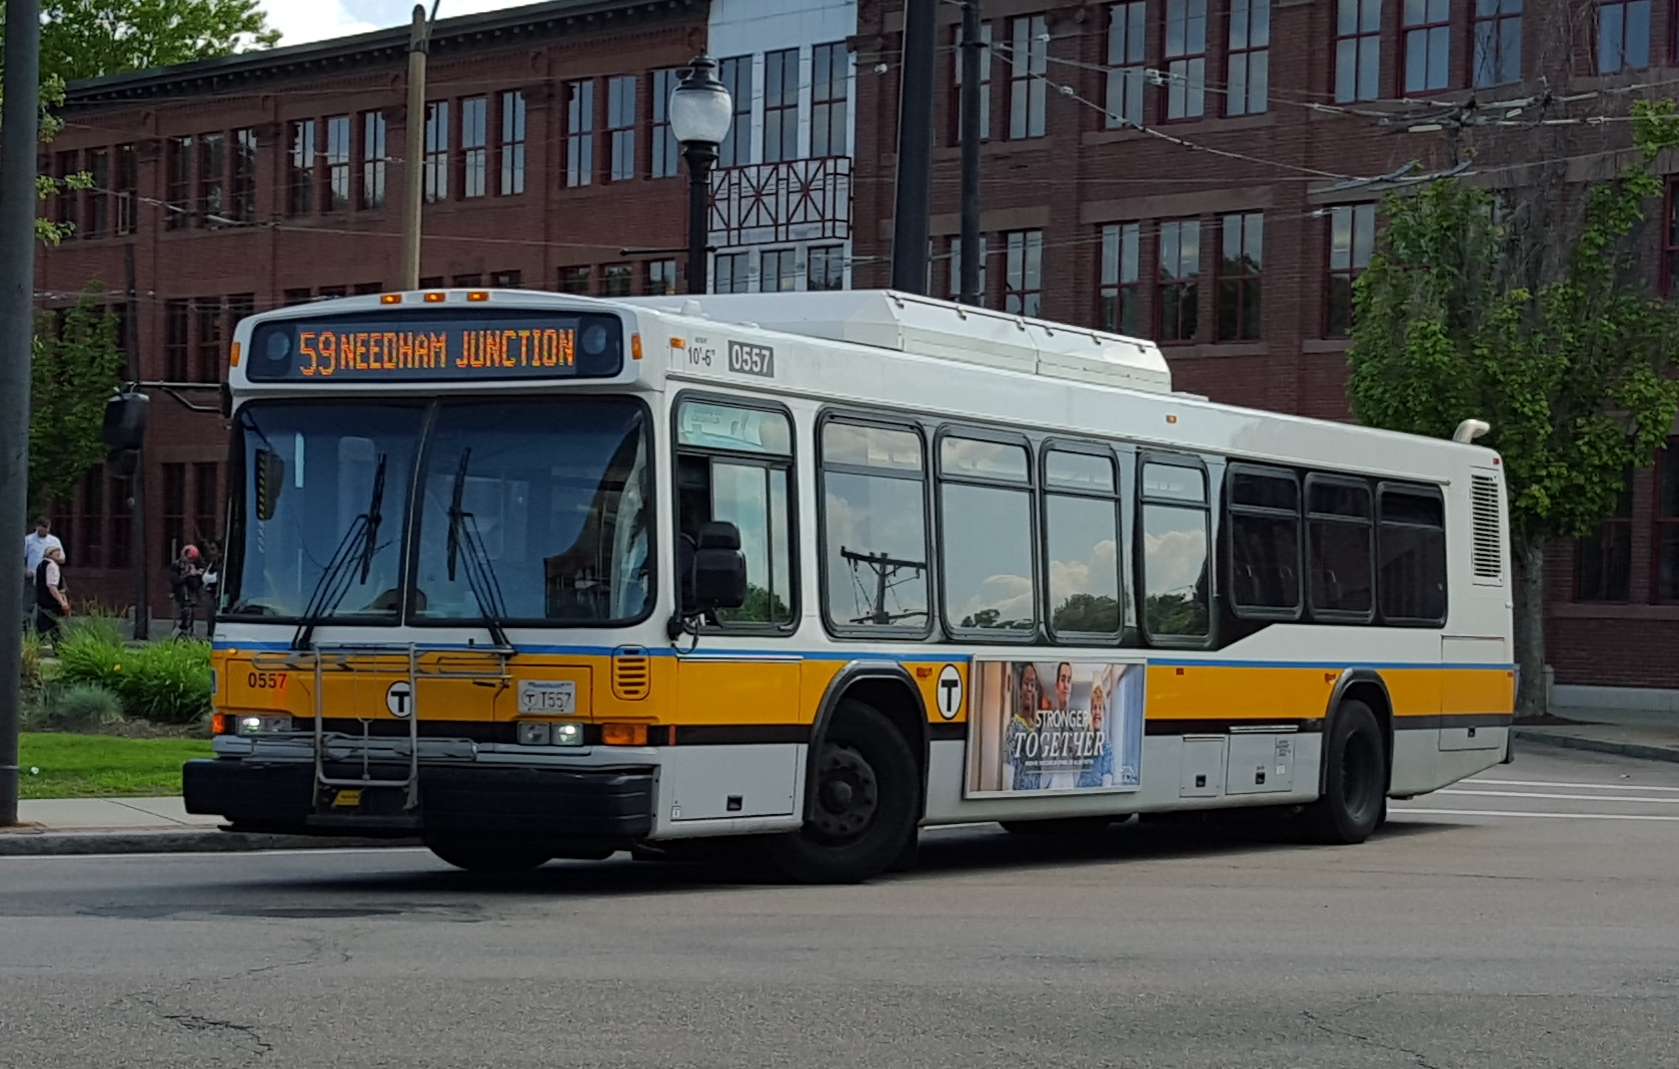 file:mbta neoplan an440lf 0557 - wikimedia commons